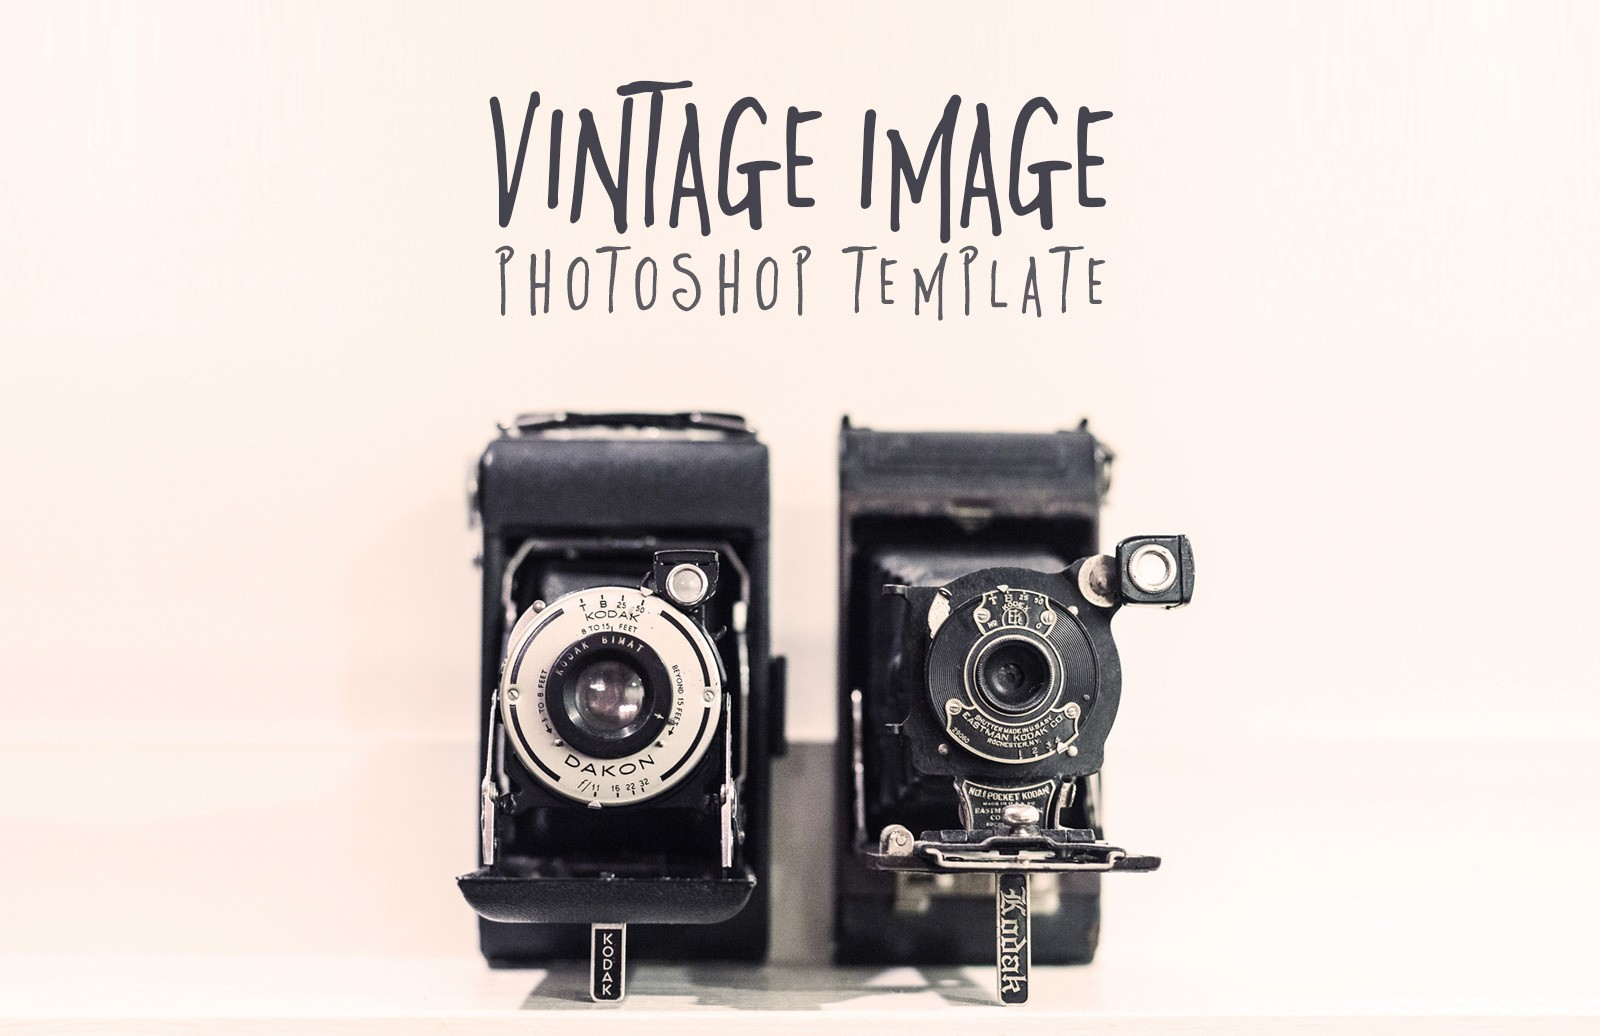 Vintage Image Photoshop Template